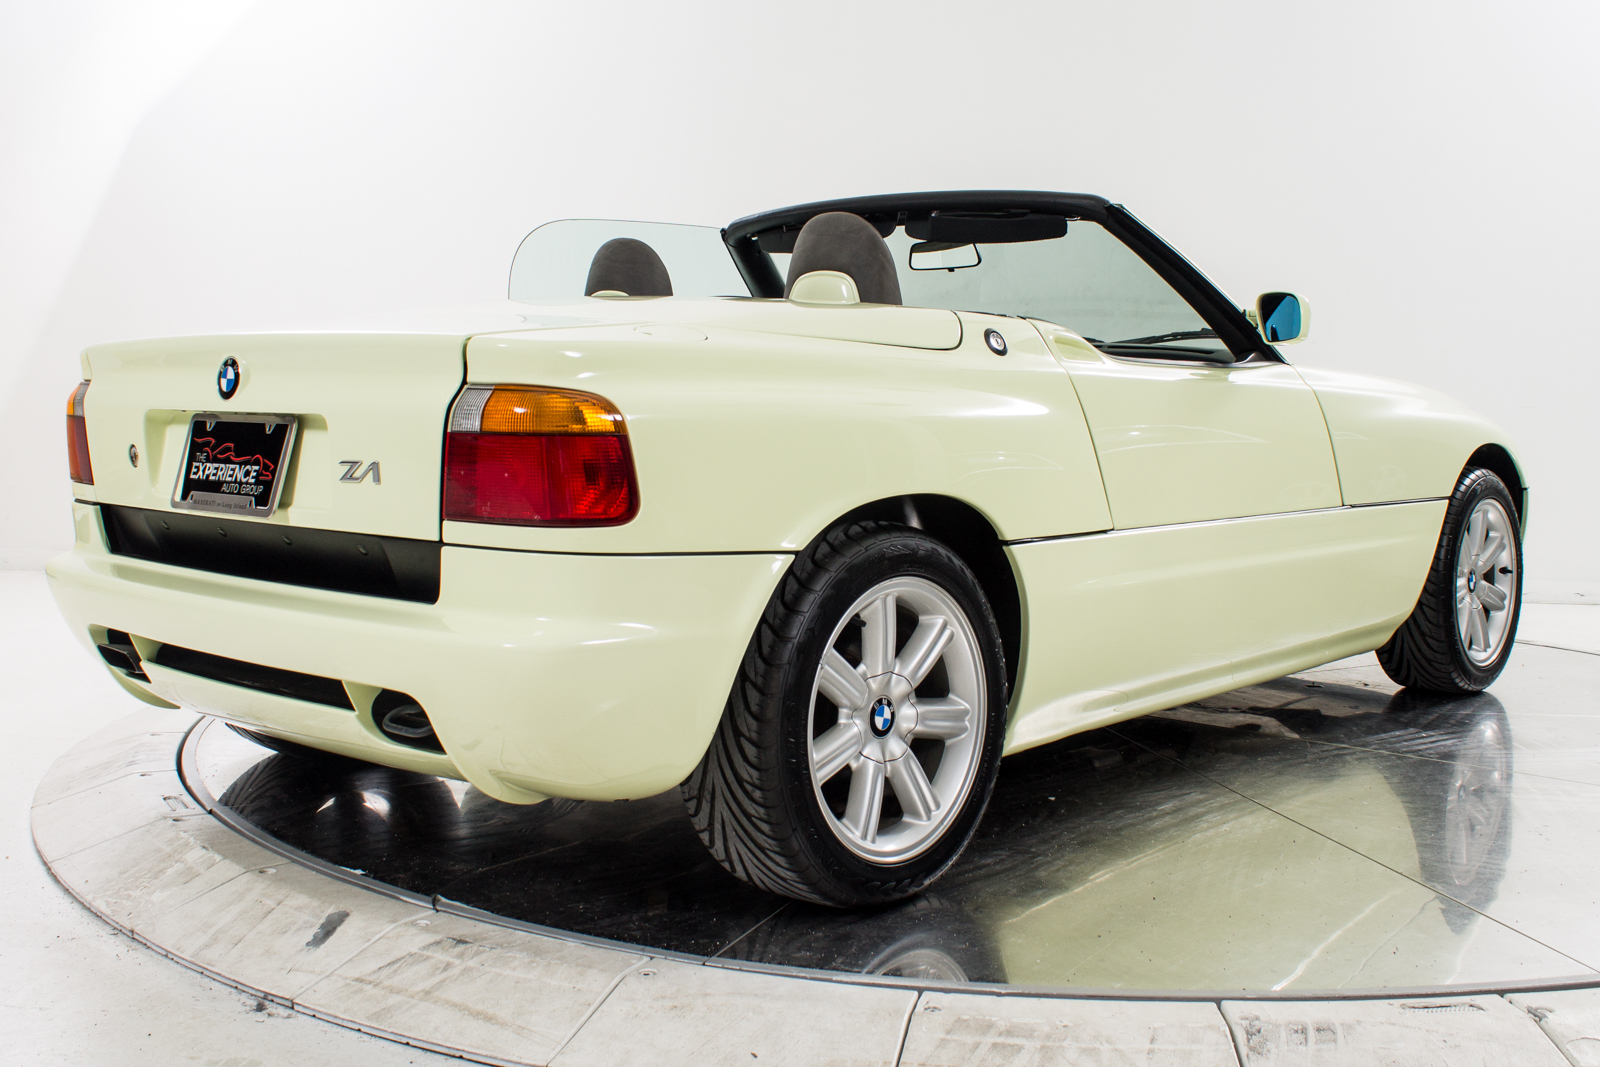 1990 bmw z1 capacity info buy aircrafts. Black Bedroom Furniture Sets. Home Design Ideas